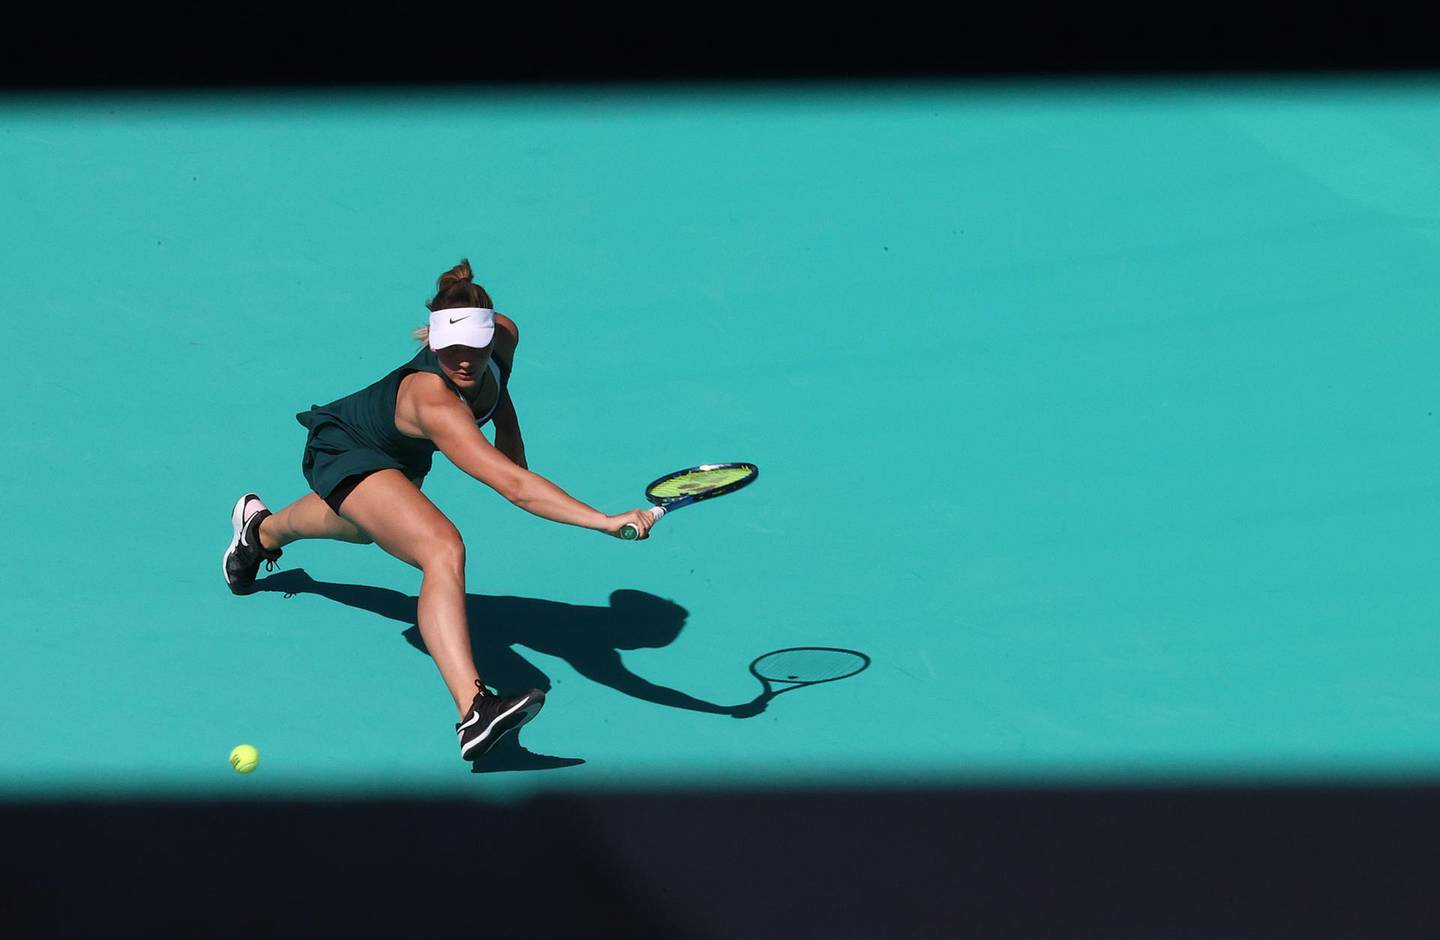 ABU DHABI, UNITED ARAB EMIRATES - JANUARY 09:  Marta Kostyuk of Ukraine in action against Su-Wei Hsieh of of Taiwan during her Women's Singles match on Day Four of the Abu Dhabi WTA Women's Tennis Open at Zayed Sports City on January 09, 2021 in Abu Dhabi, United Arab Emirates. (Photo by Francois Nel/Getty Images)